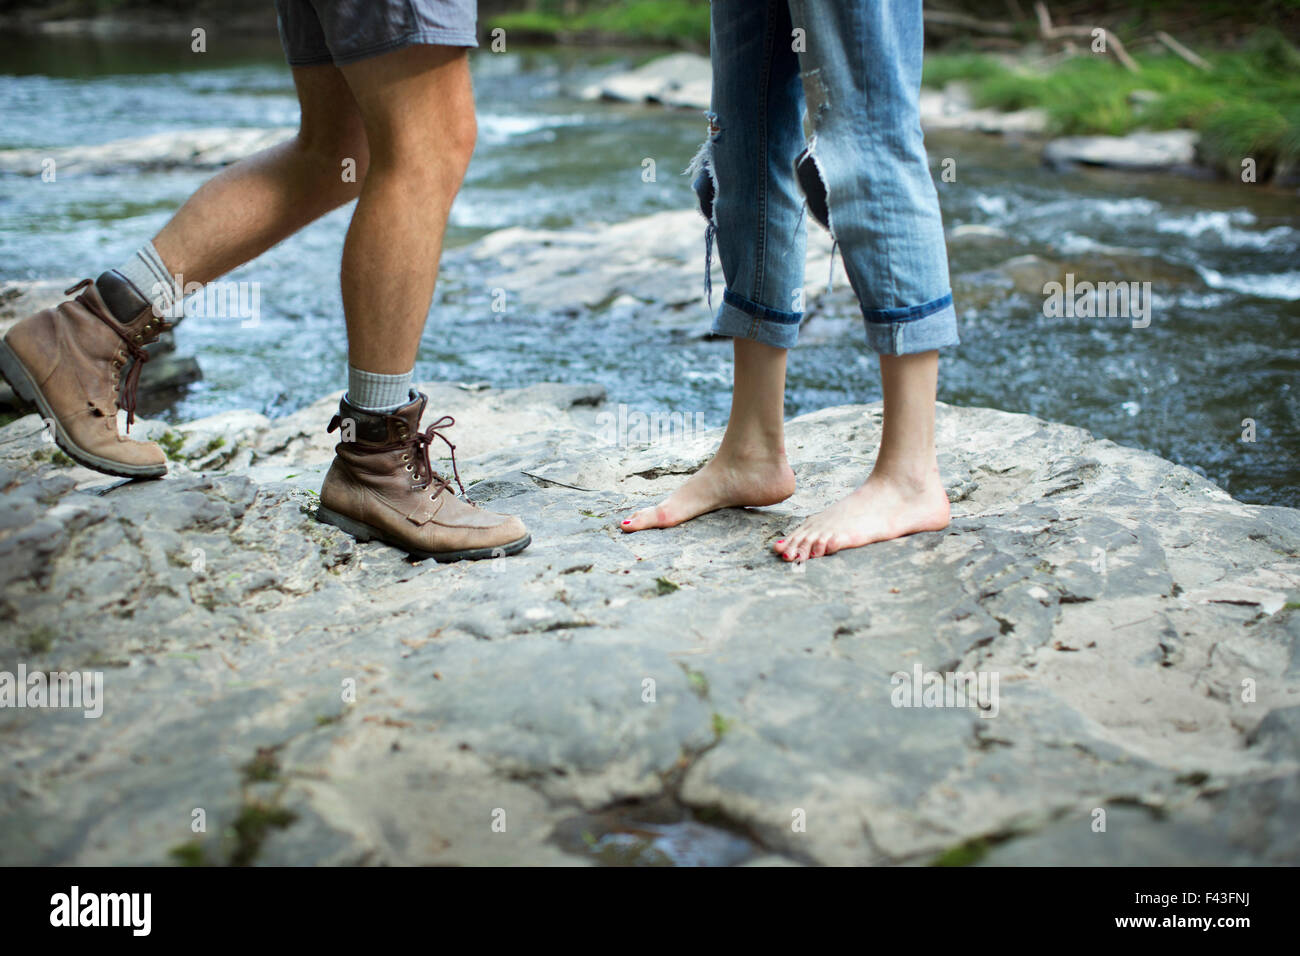 Two people on the rocks by a rushing river, man and woman, lower legs and feet. - Stock Image